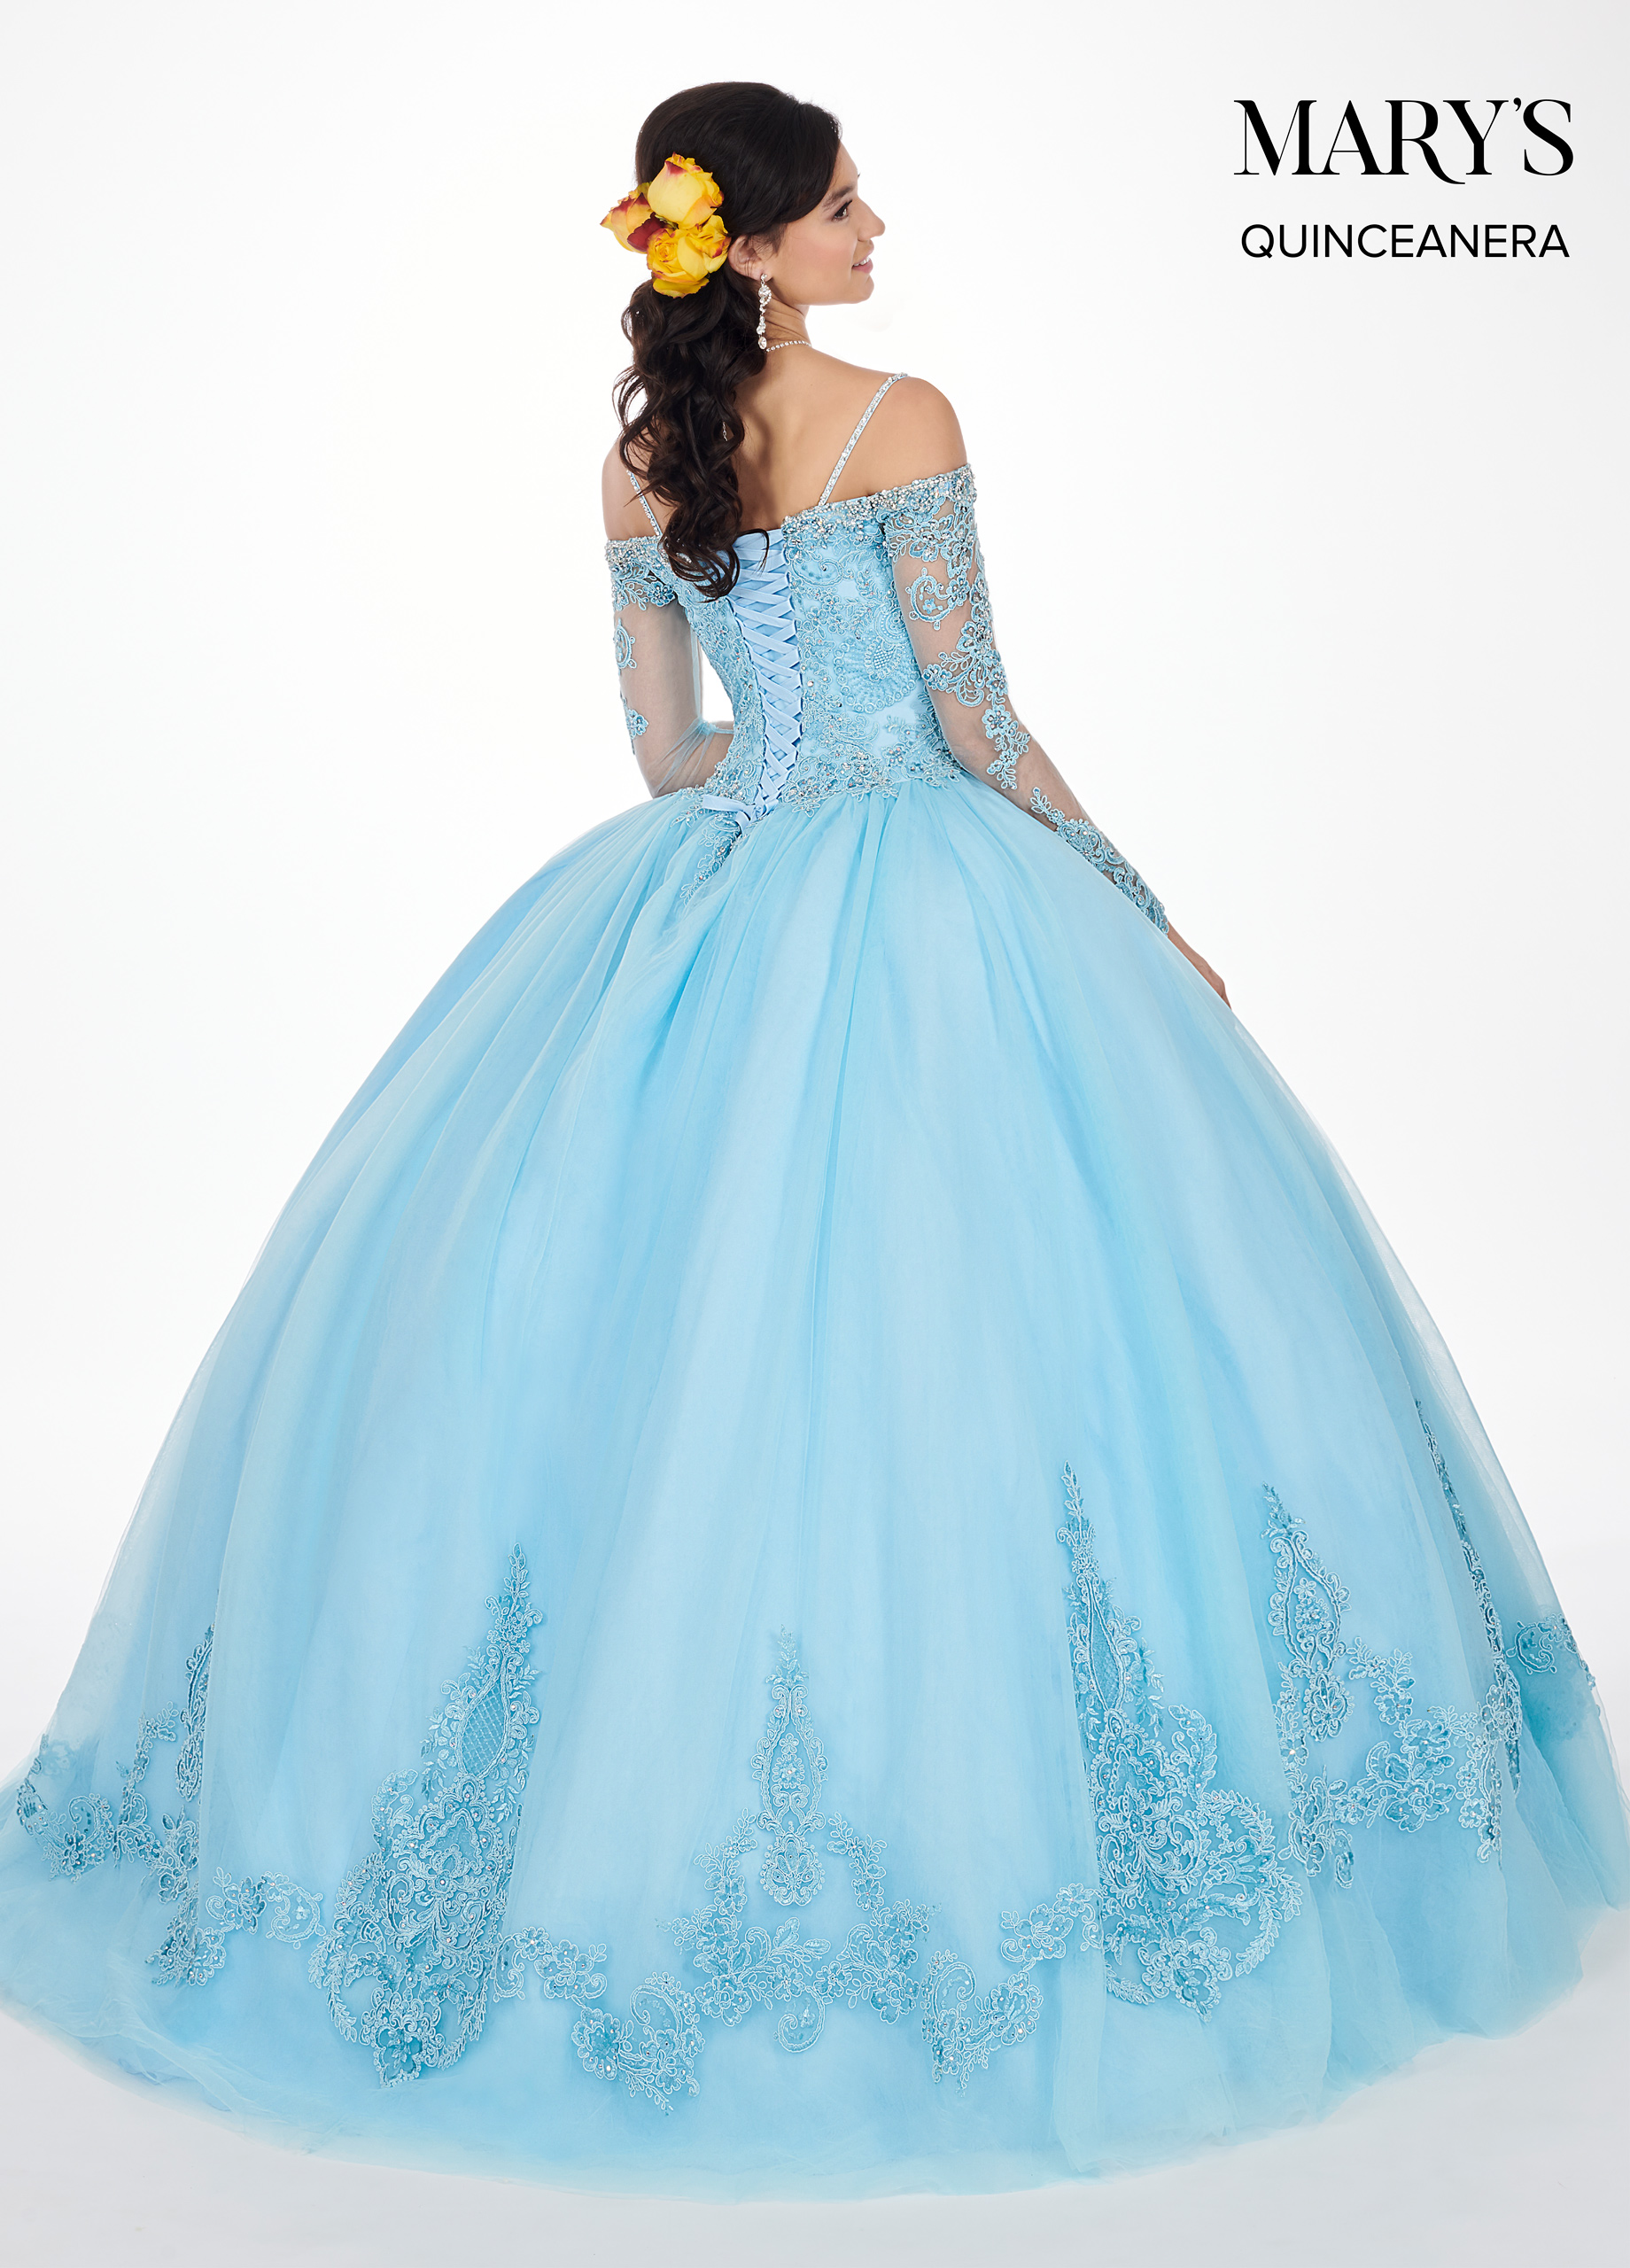 Marys Quinceanera Dresses | Mary's Quinceanera | Style - MQ2060